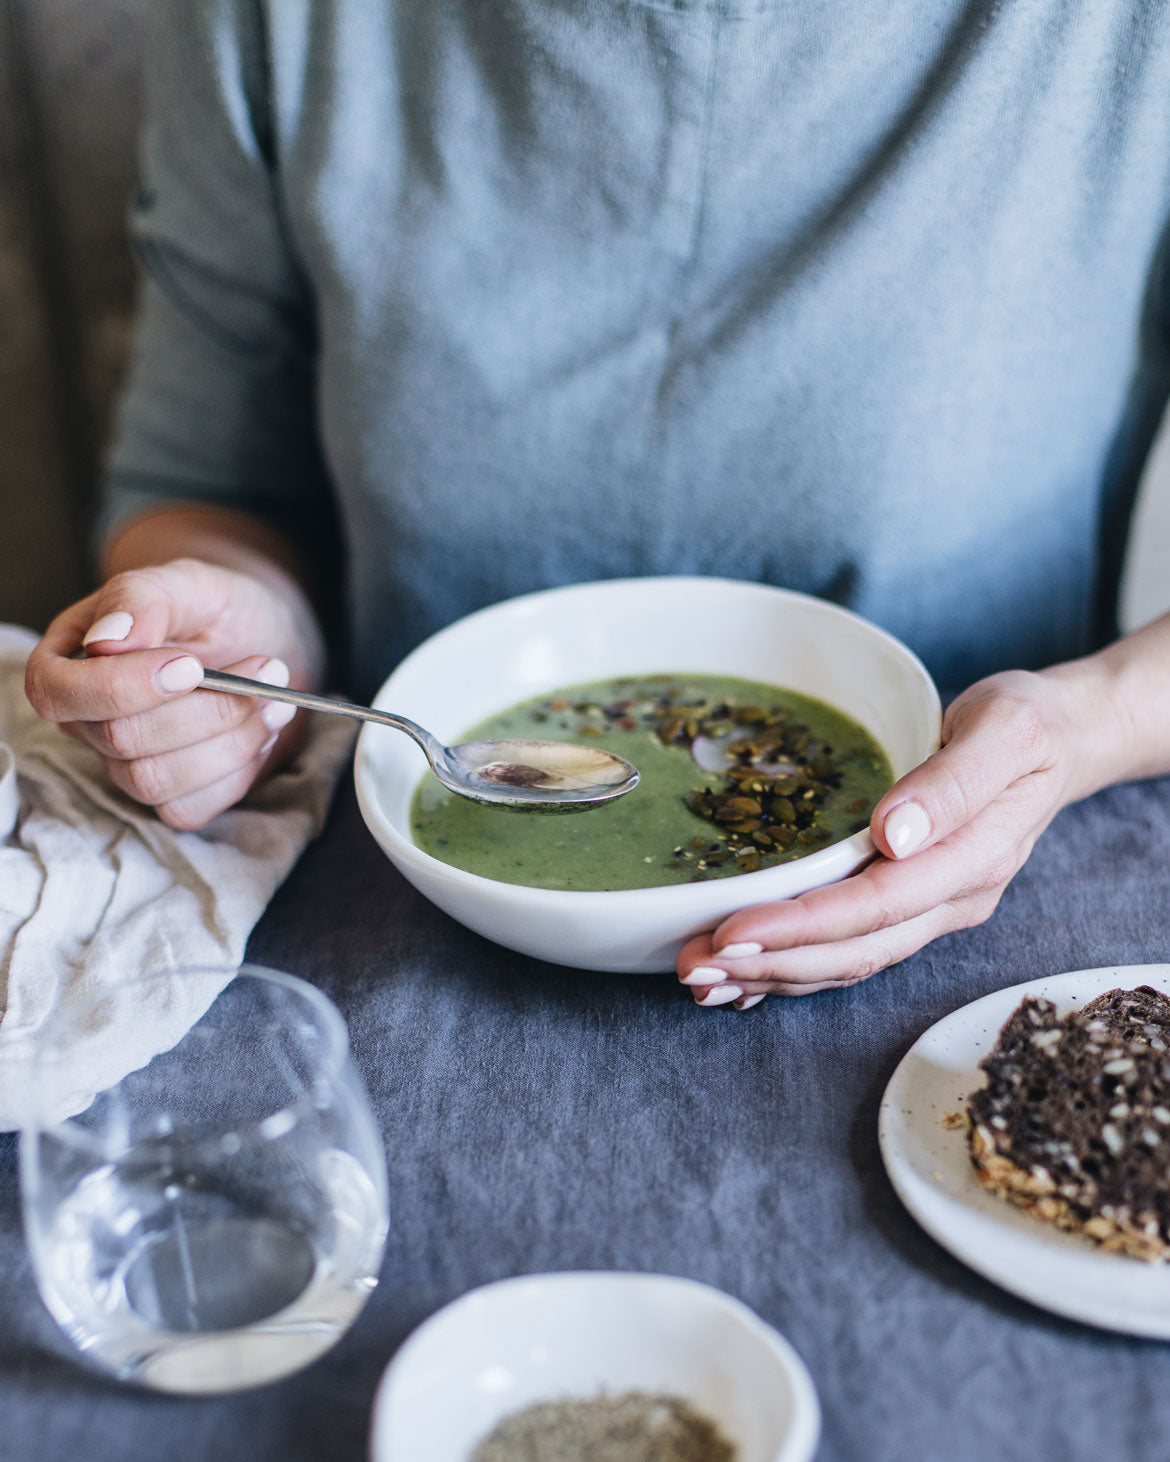 Pea and mint soup served in a WInterwares handmade ceramic bowl